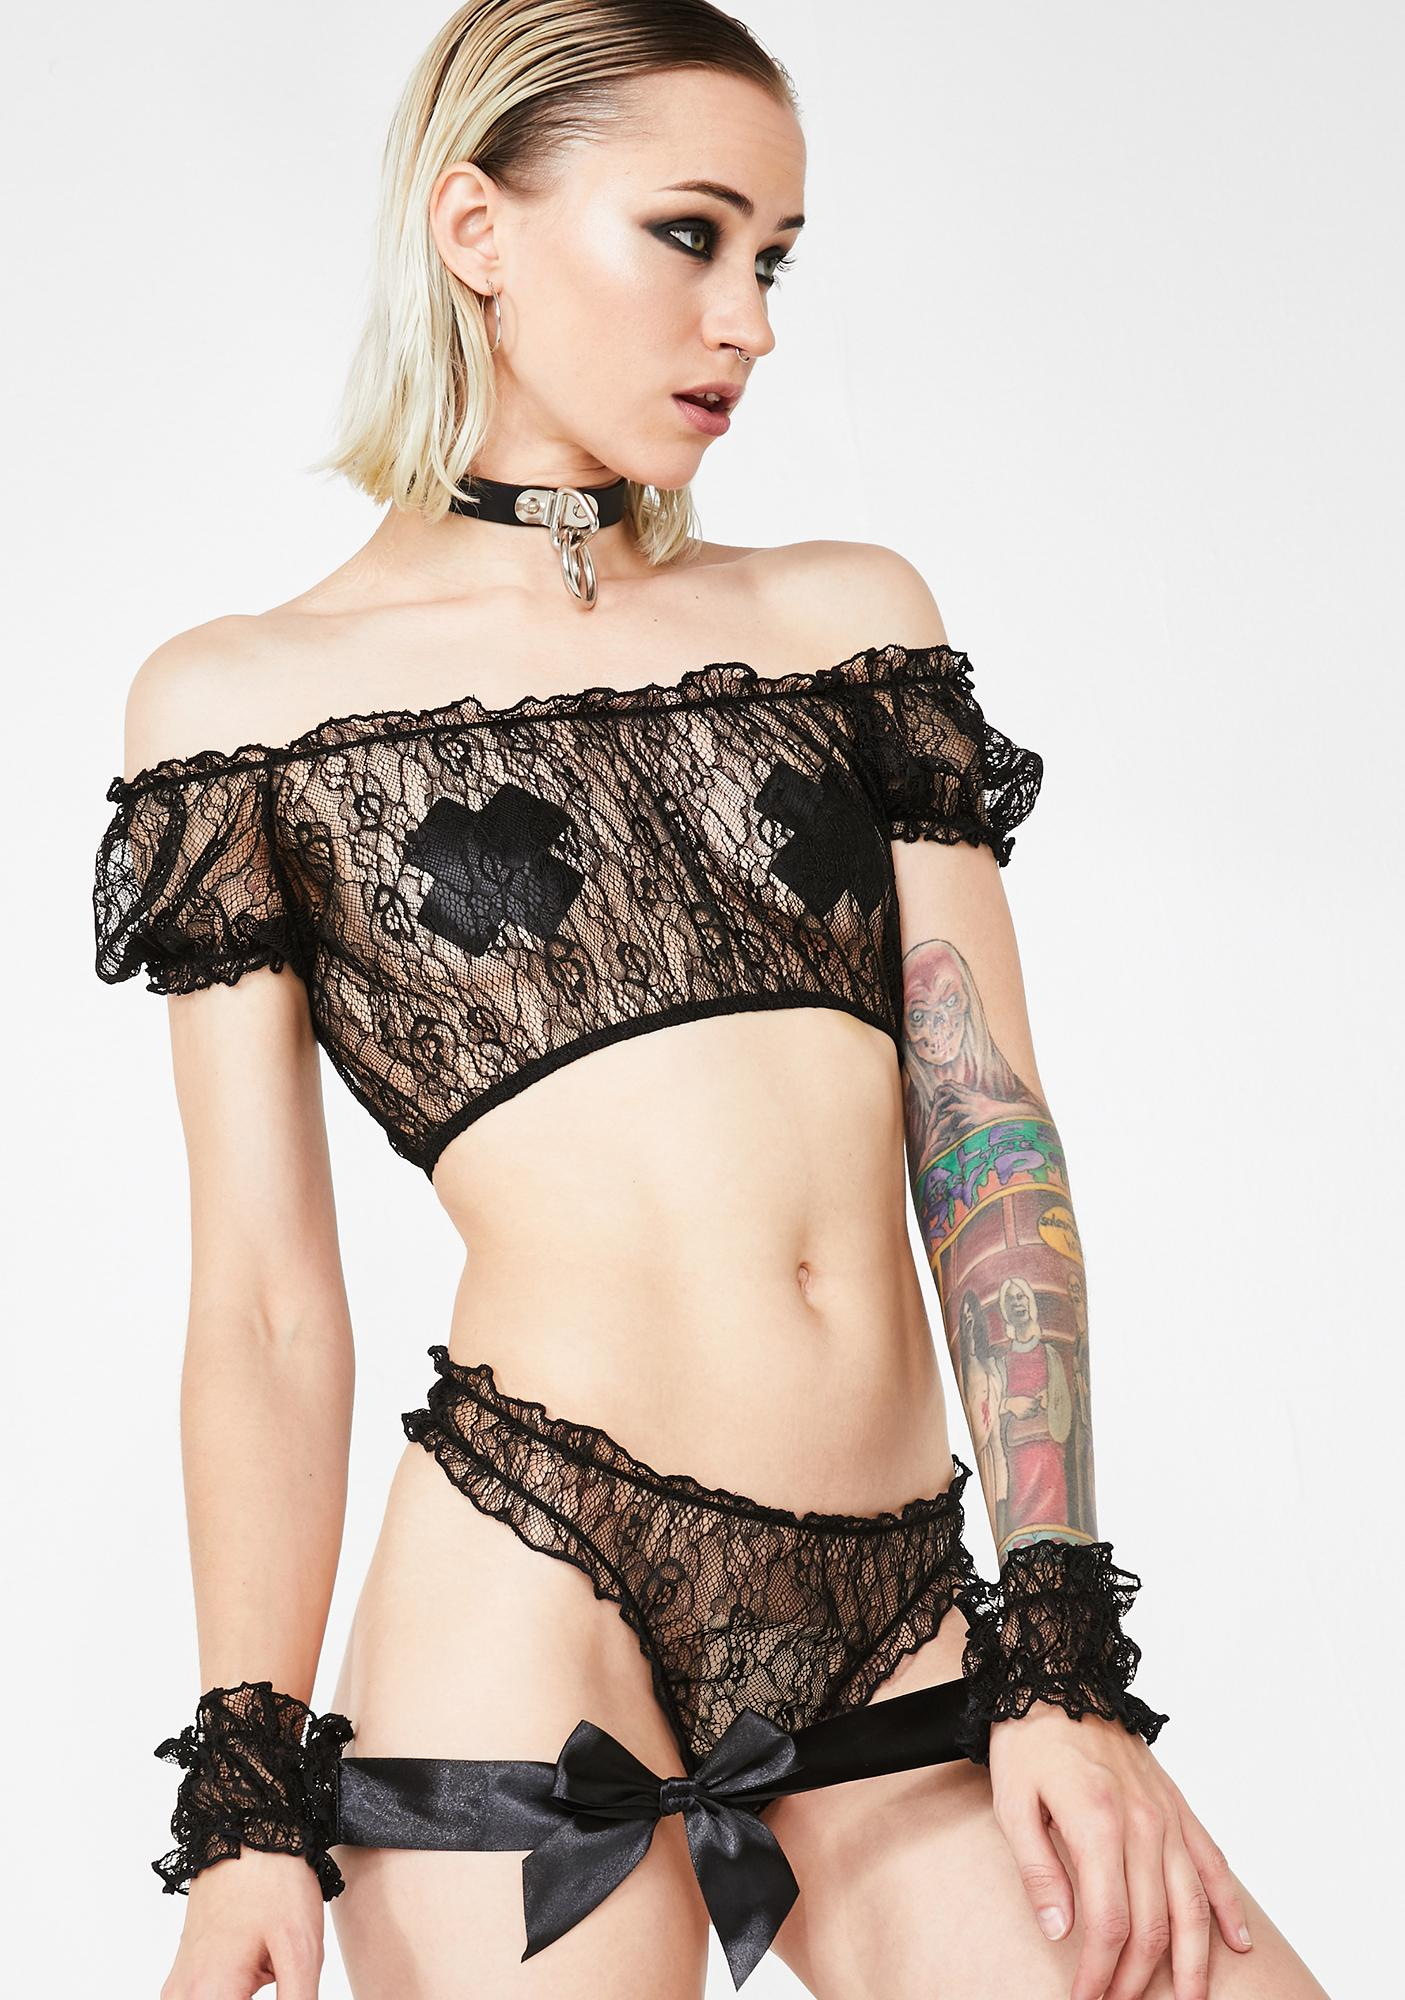 06ddeca6a22 Sheer Crop Top Thong Cuffs Lingerie Set